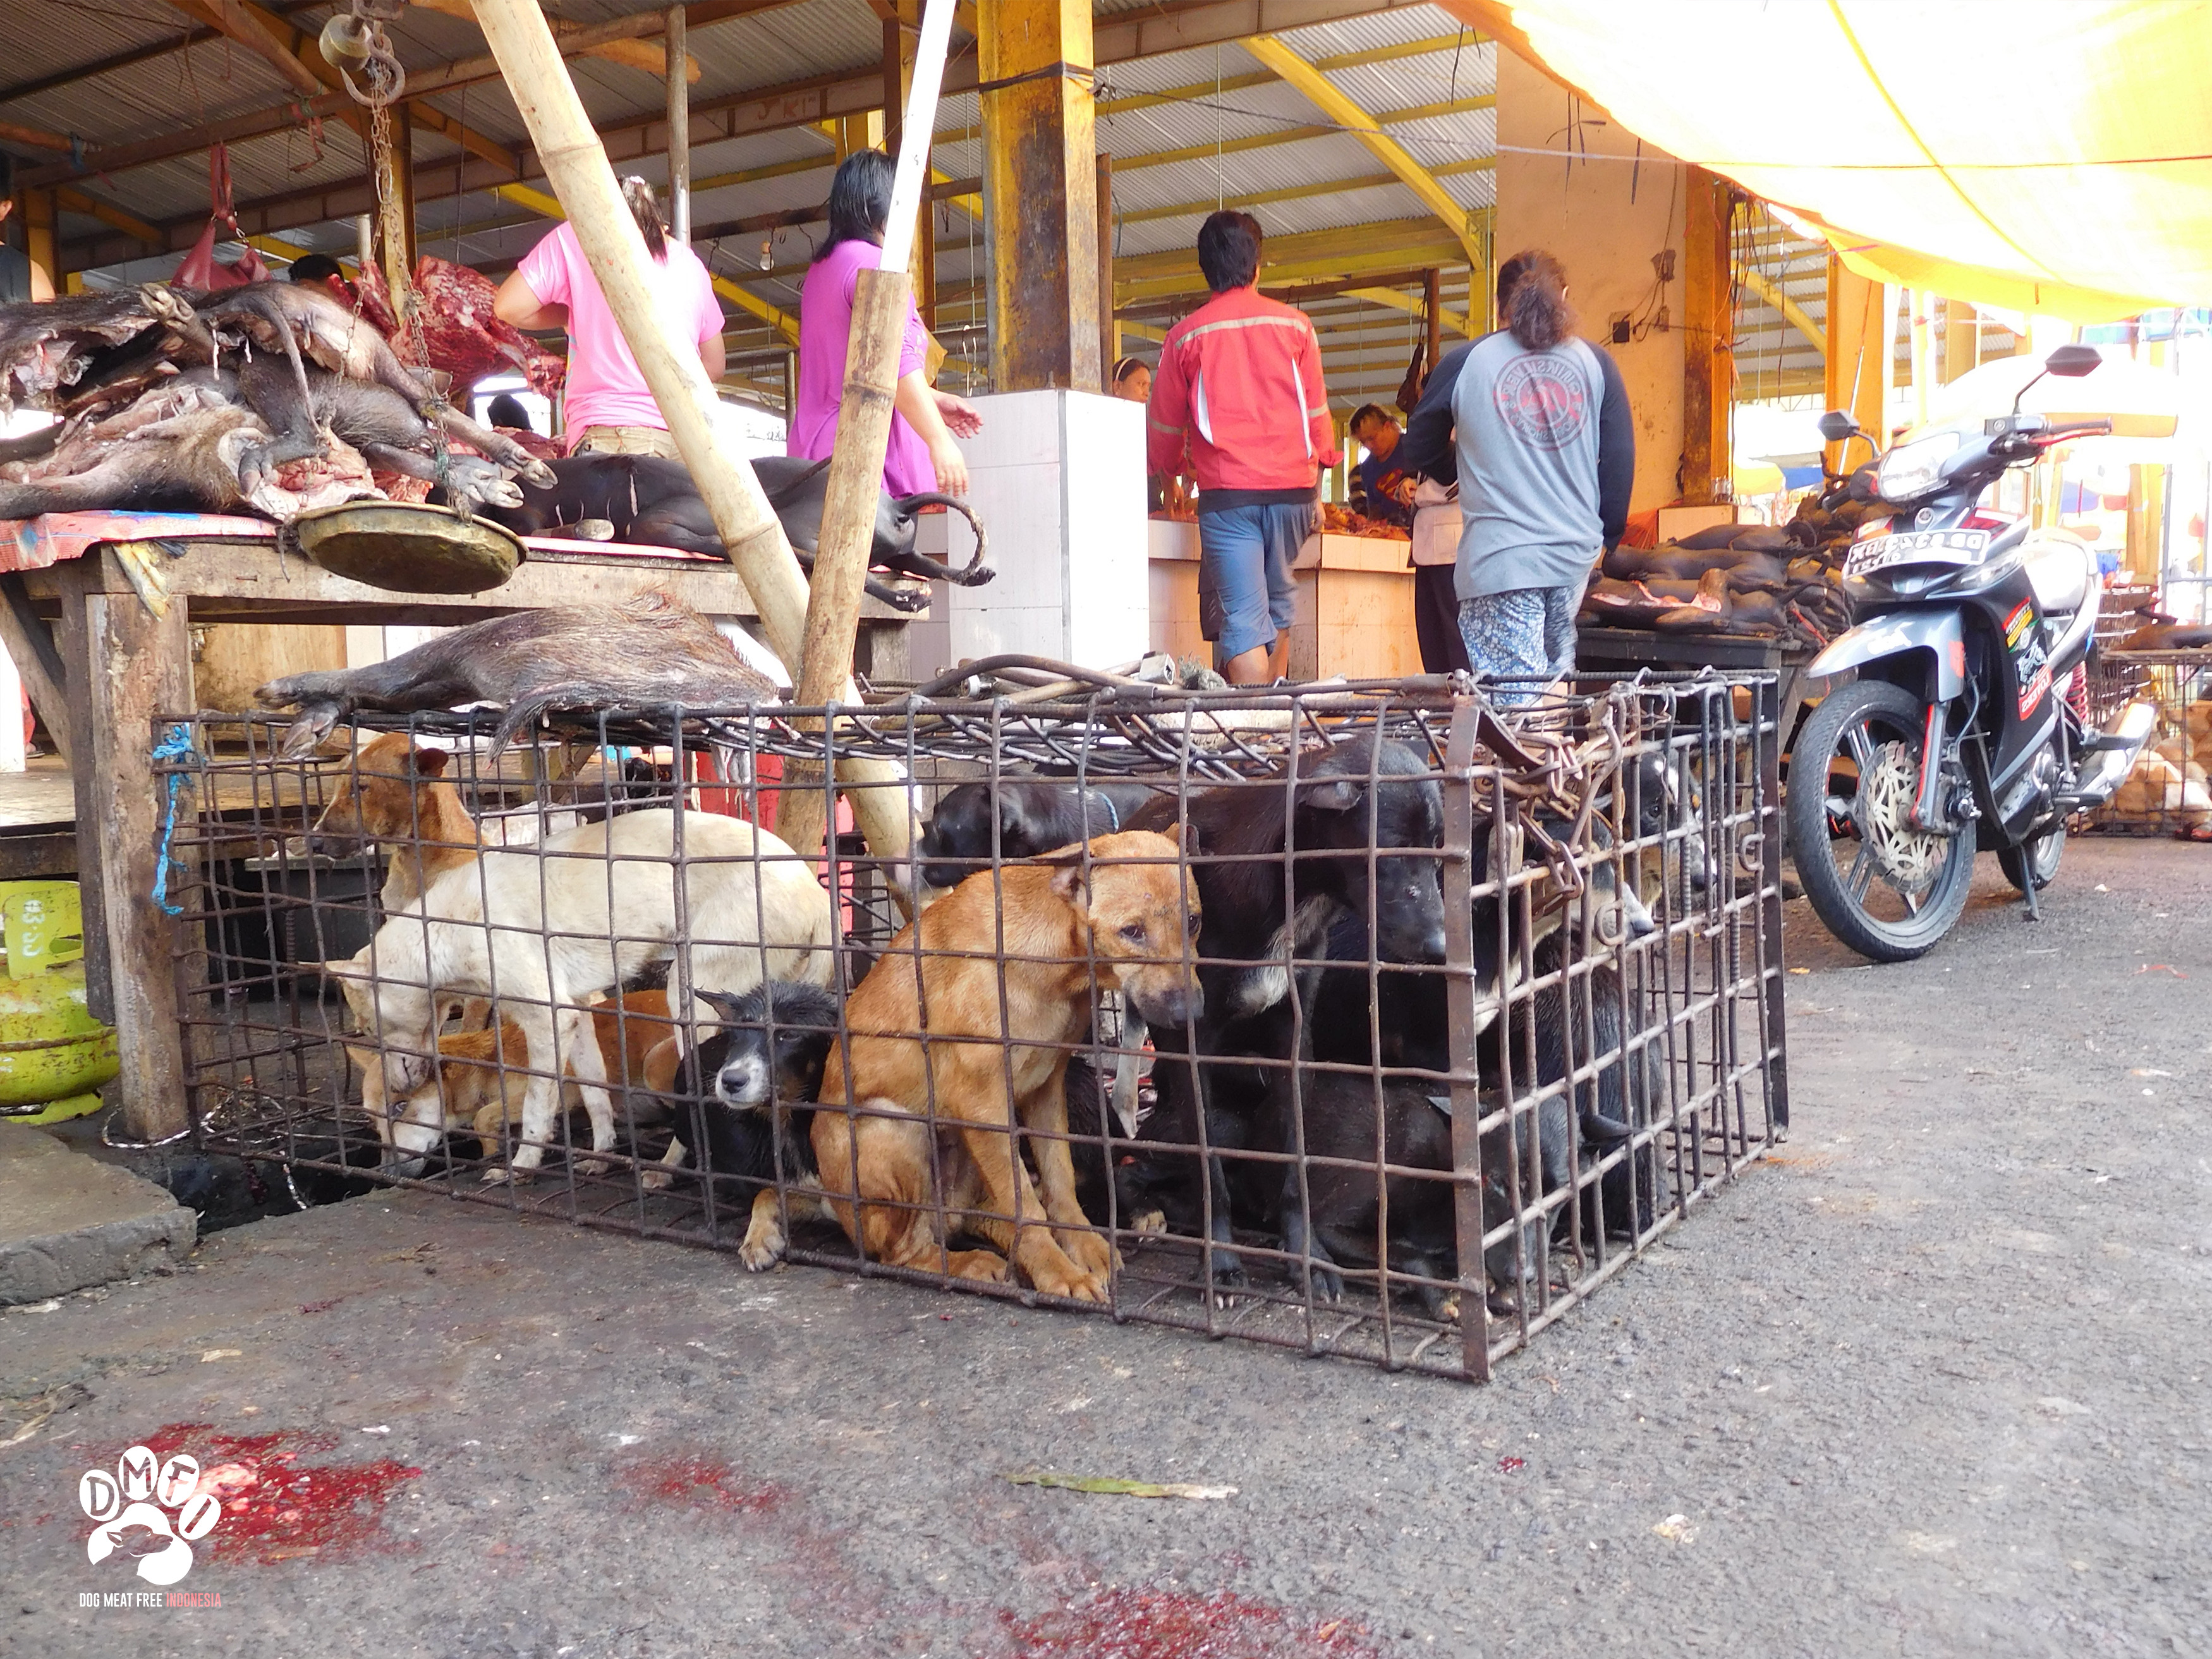 dog meat market in Indonesia